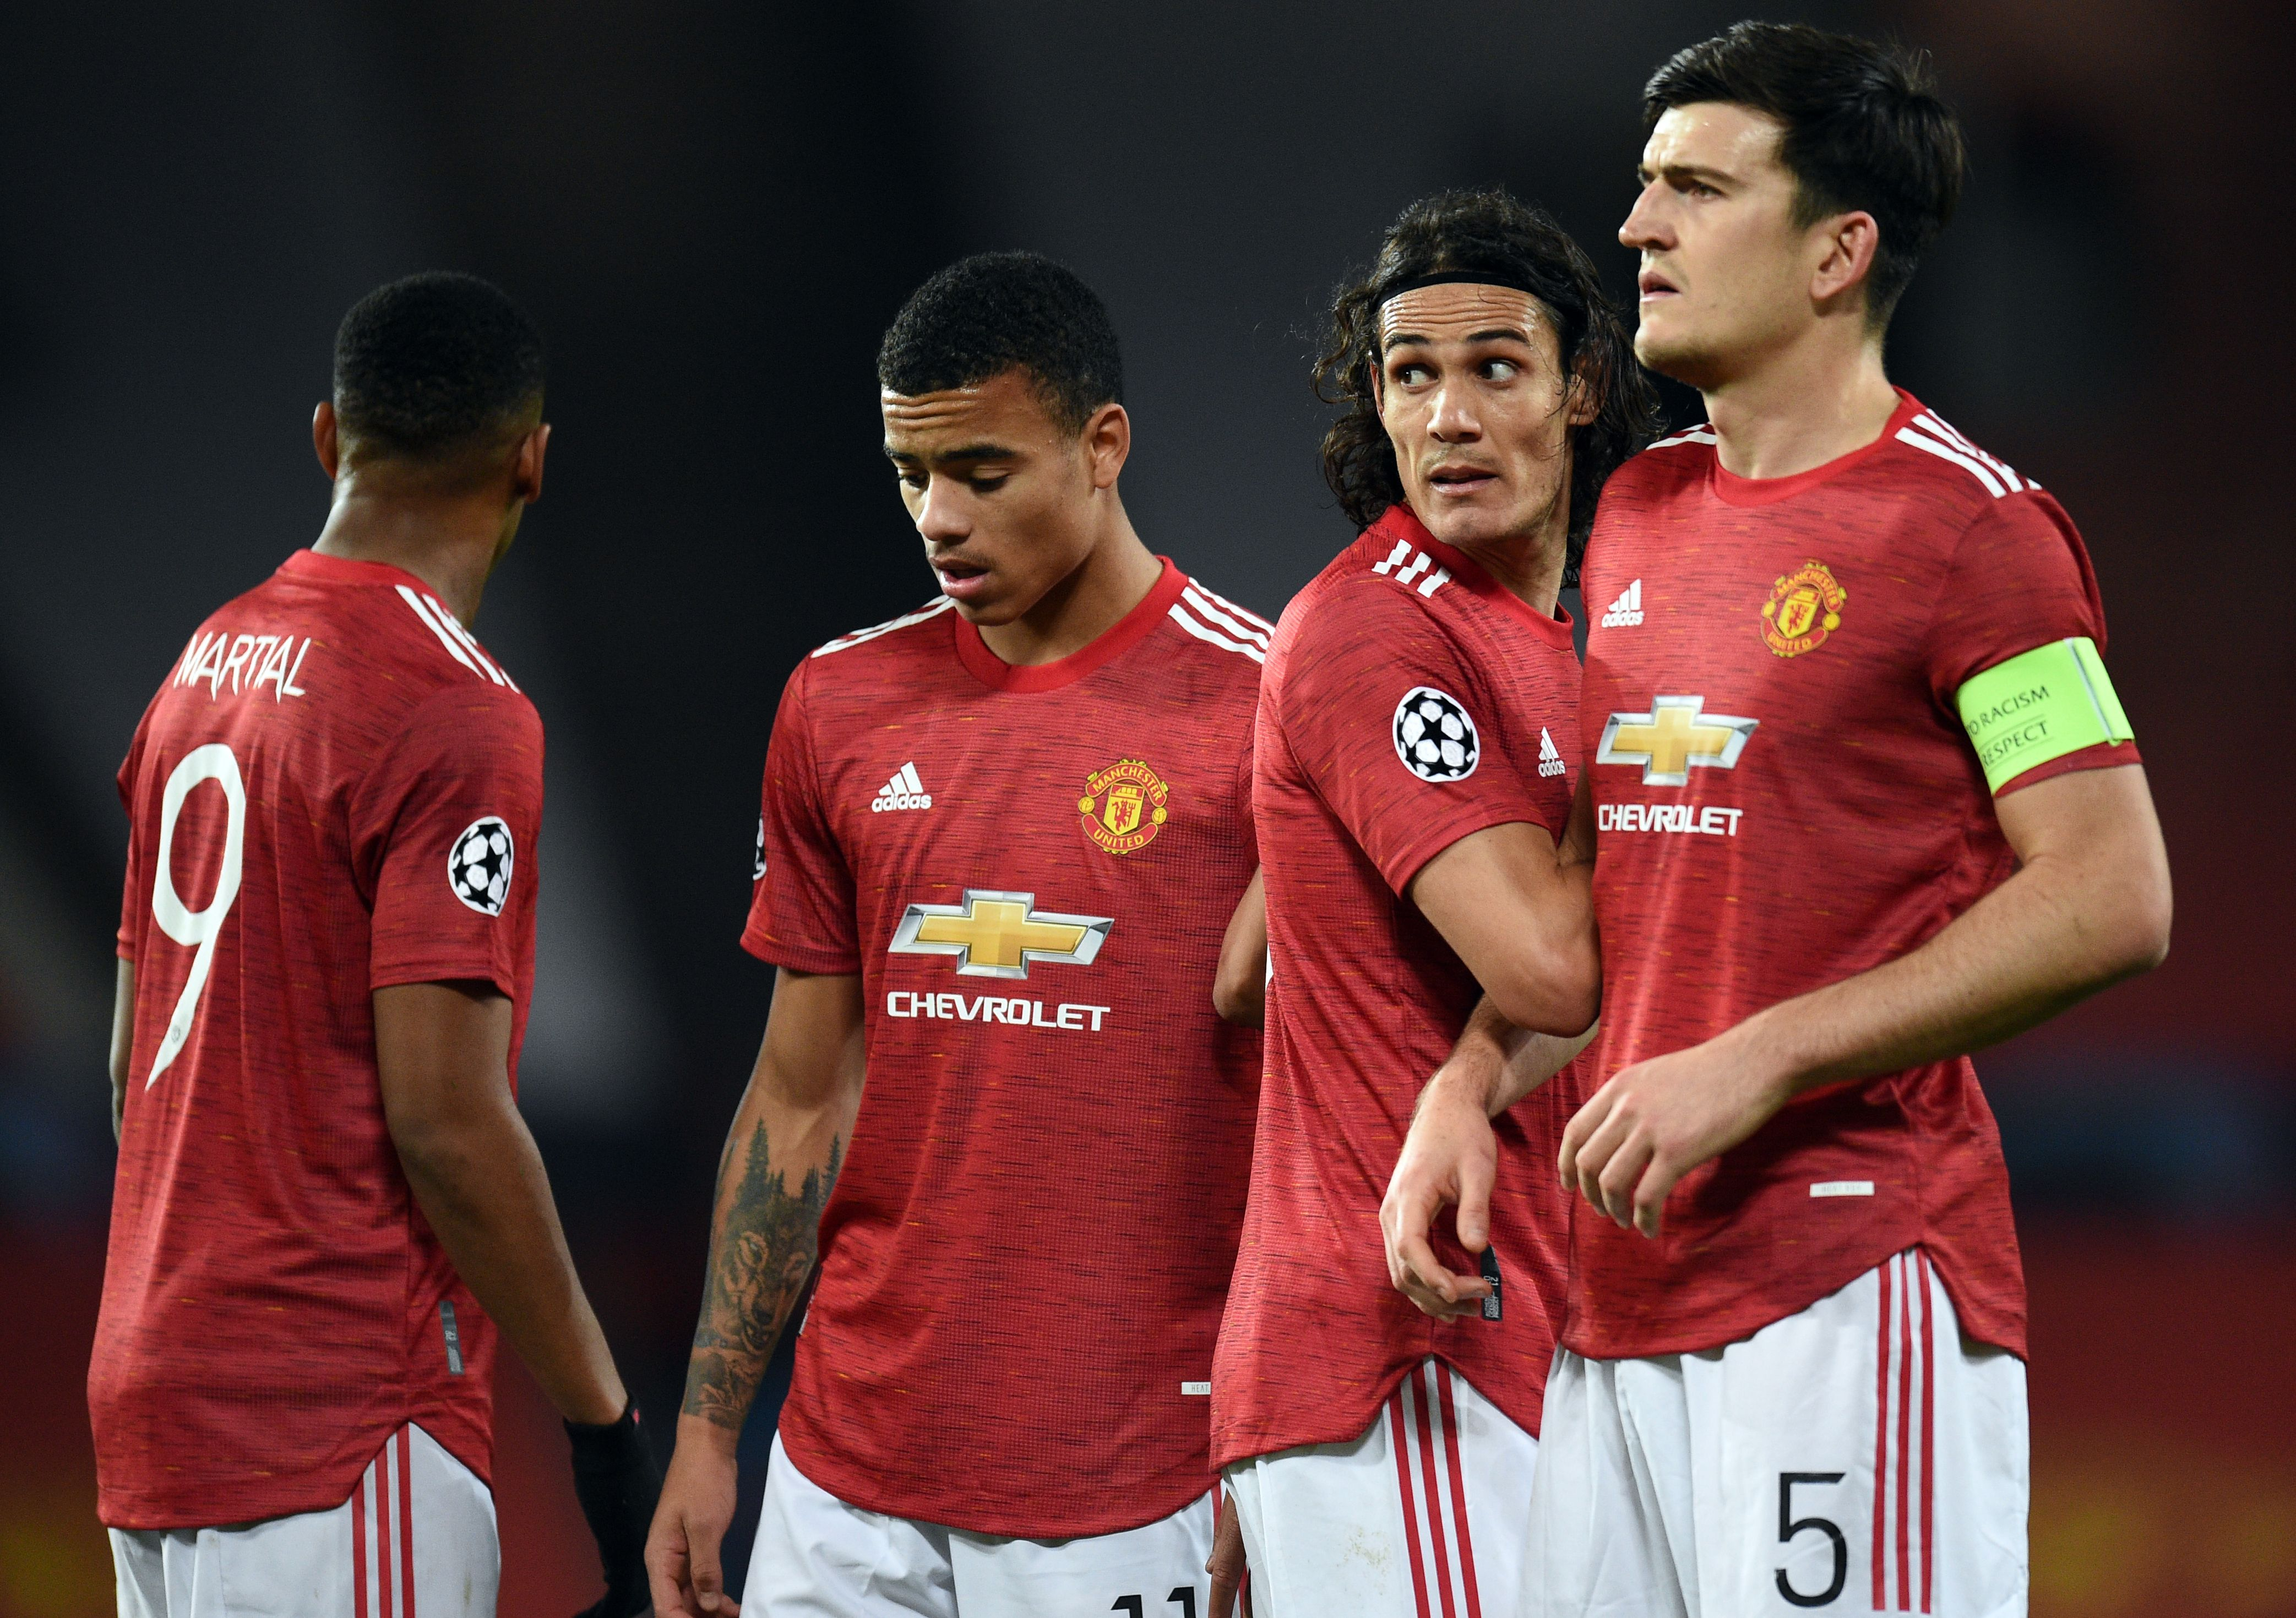 4-2-3-1 Manchester United Predicted Lineup Vs West Ham United (Man United players are seen in the photo)